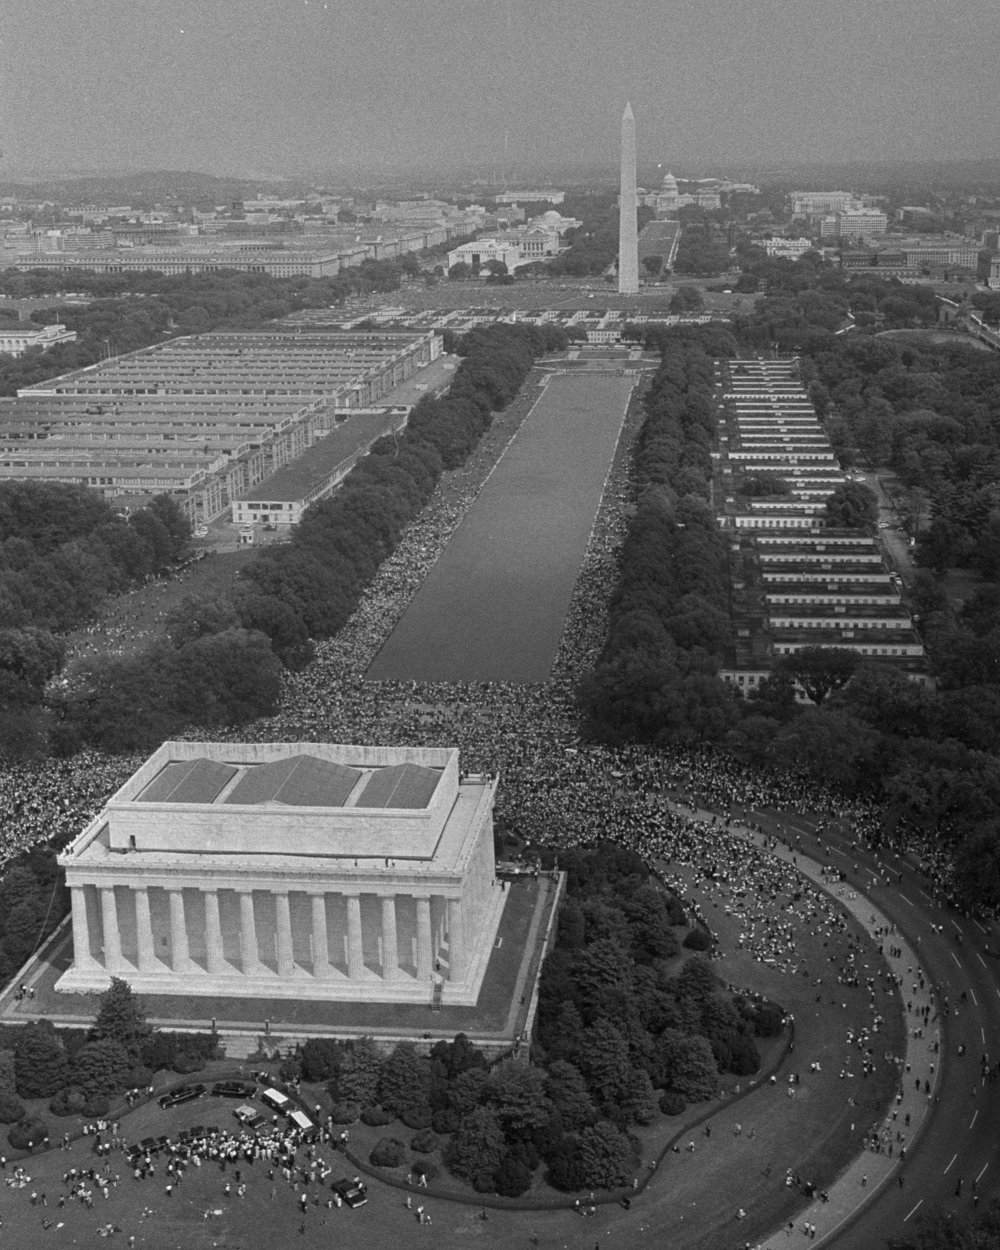 "On August 28, 1963, more than 250,000 civil rights supporters gathered in Washington, D.C. to hear Martin Luther King Jr.'s famous ""I Have a Dream"" speech. As shown in this Overview, listeners stretched from the steps of the Lincoln Memorial all the way to the Washington Monument, a distance of nearly one mile (1.3 km). Today — the third Monday of January — marks Martin Luther King Jr. Day in America, a day to remember his life and contributions to the Civil Rights Movement.  38°53'21.0""N, 77°03'03.1""W  Source imagery: The Library of Congress"